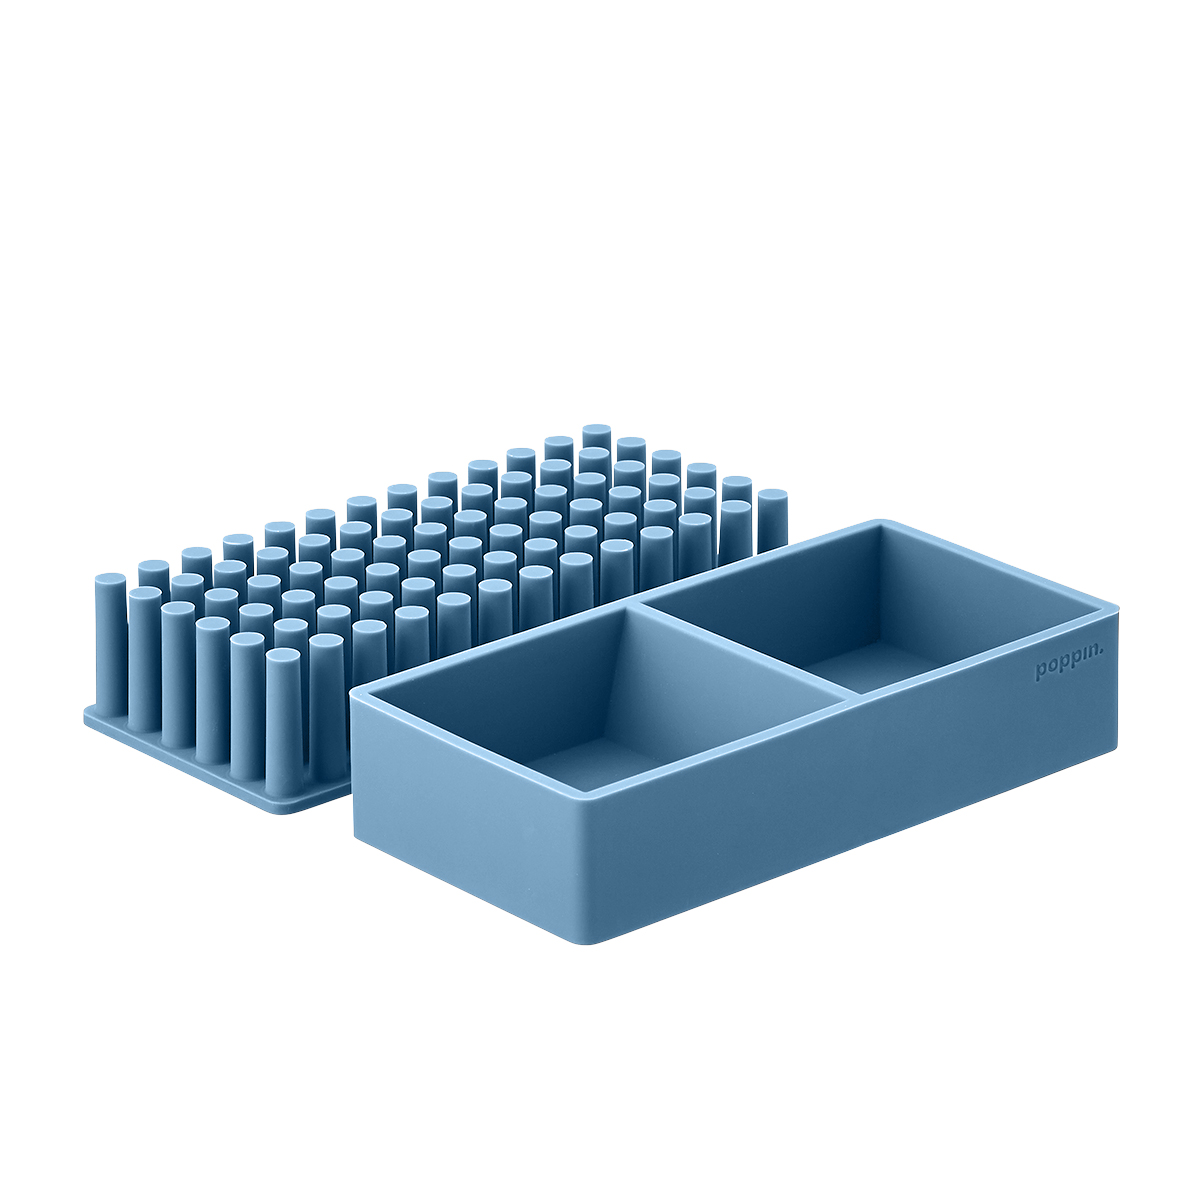 Slate Blue Poppin Silicone Organizers